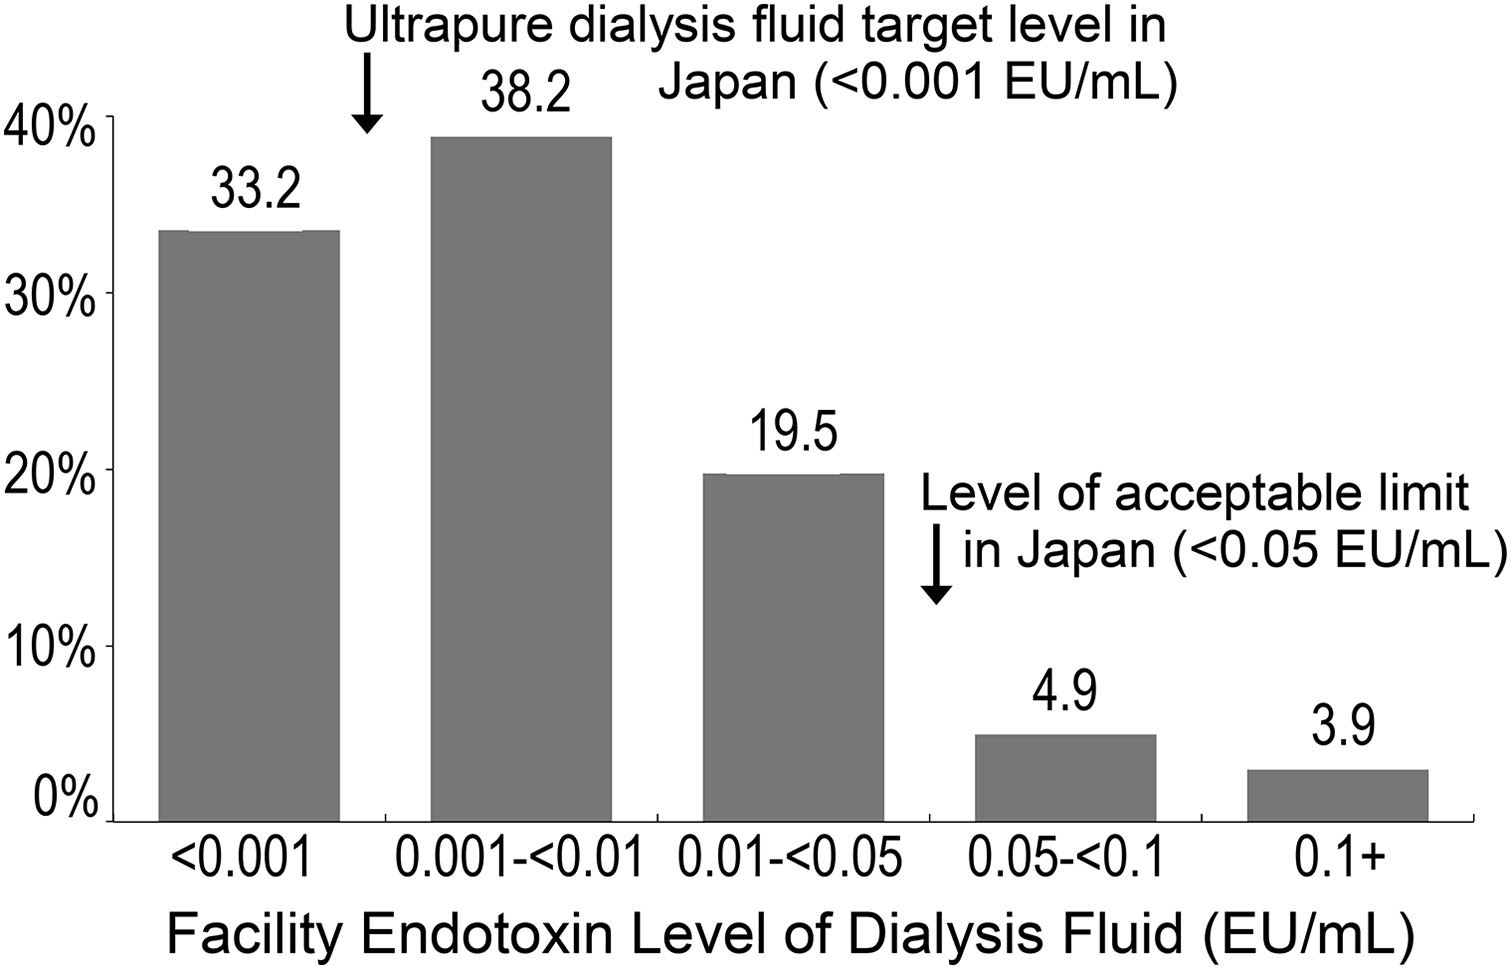 Dialysis Fluid Endotoxin Level and Mortality in